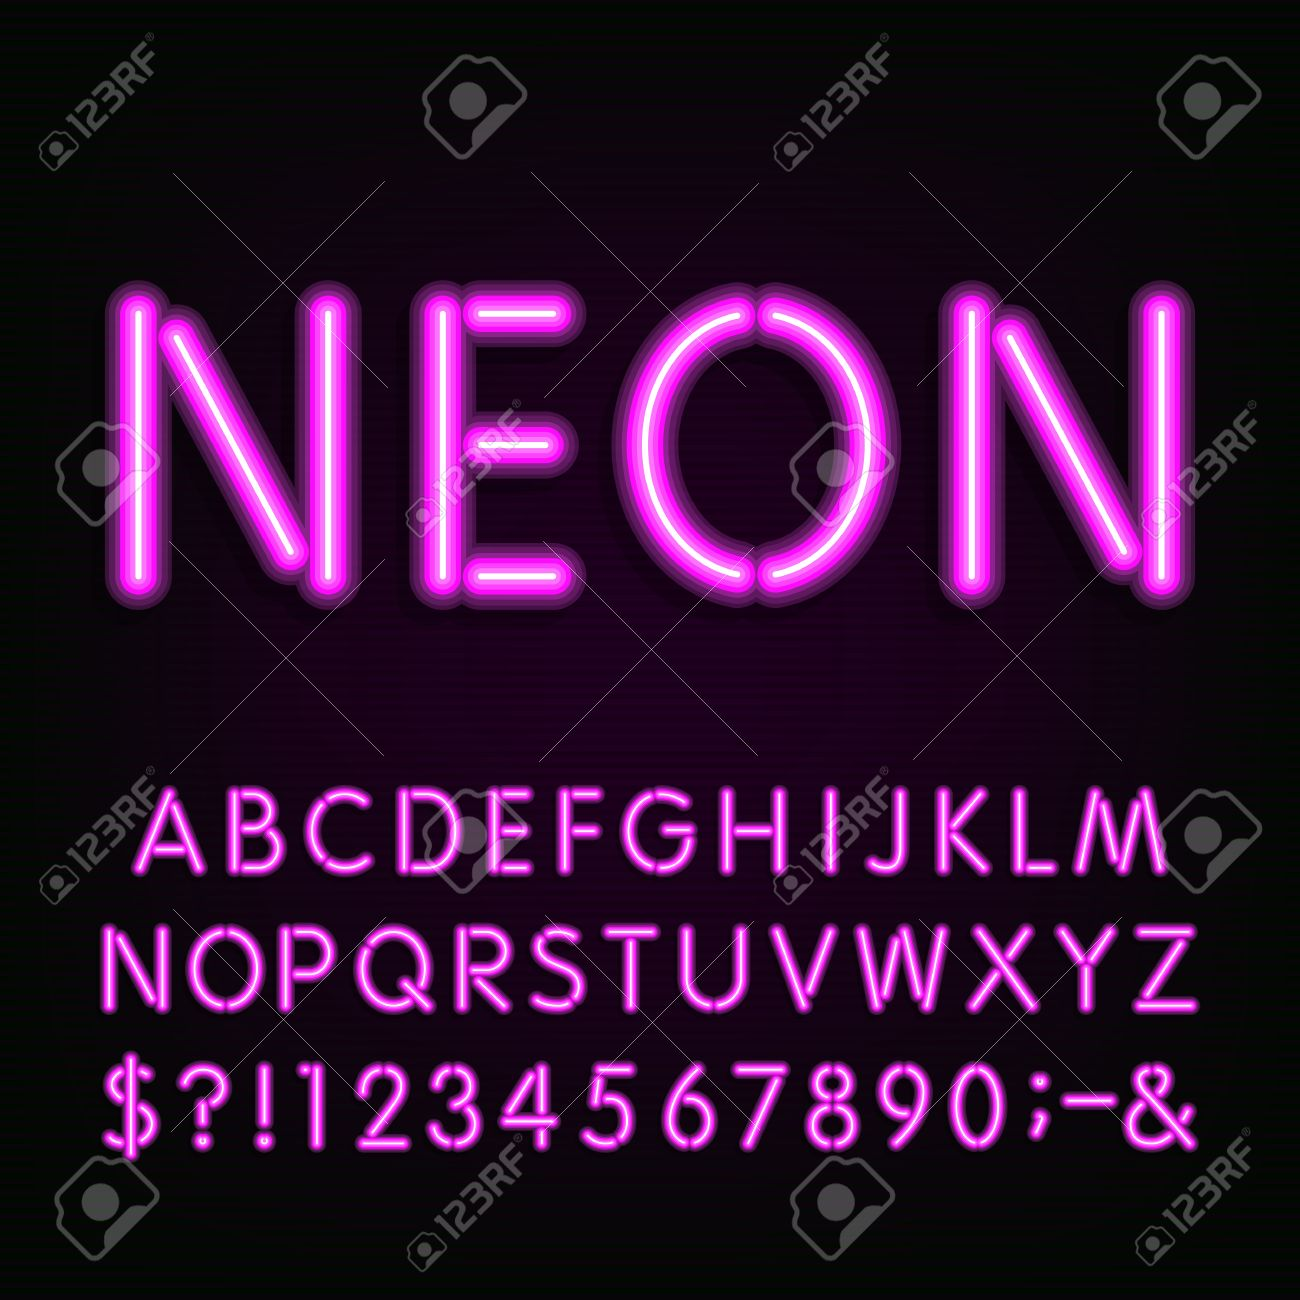 Neon Light Alphabet Font. Type letters, numbers and symbols. Purple neon tube letters on the dark background. Vector typeface for labels, titles, posters etc. - 49852434